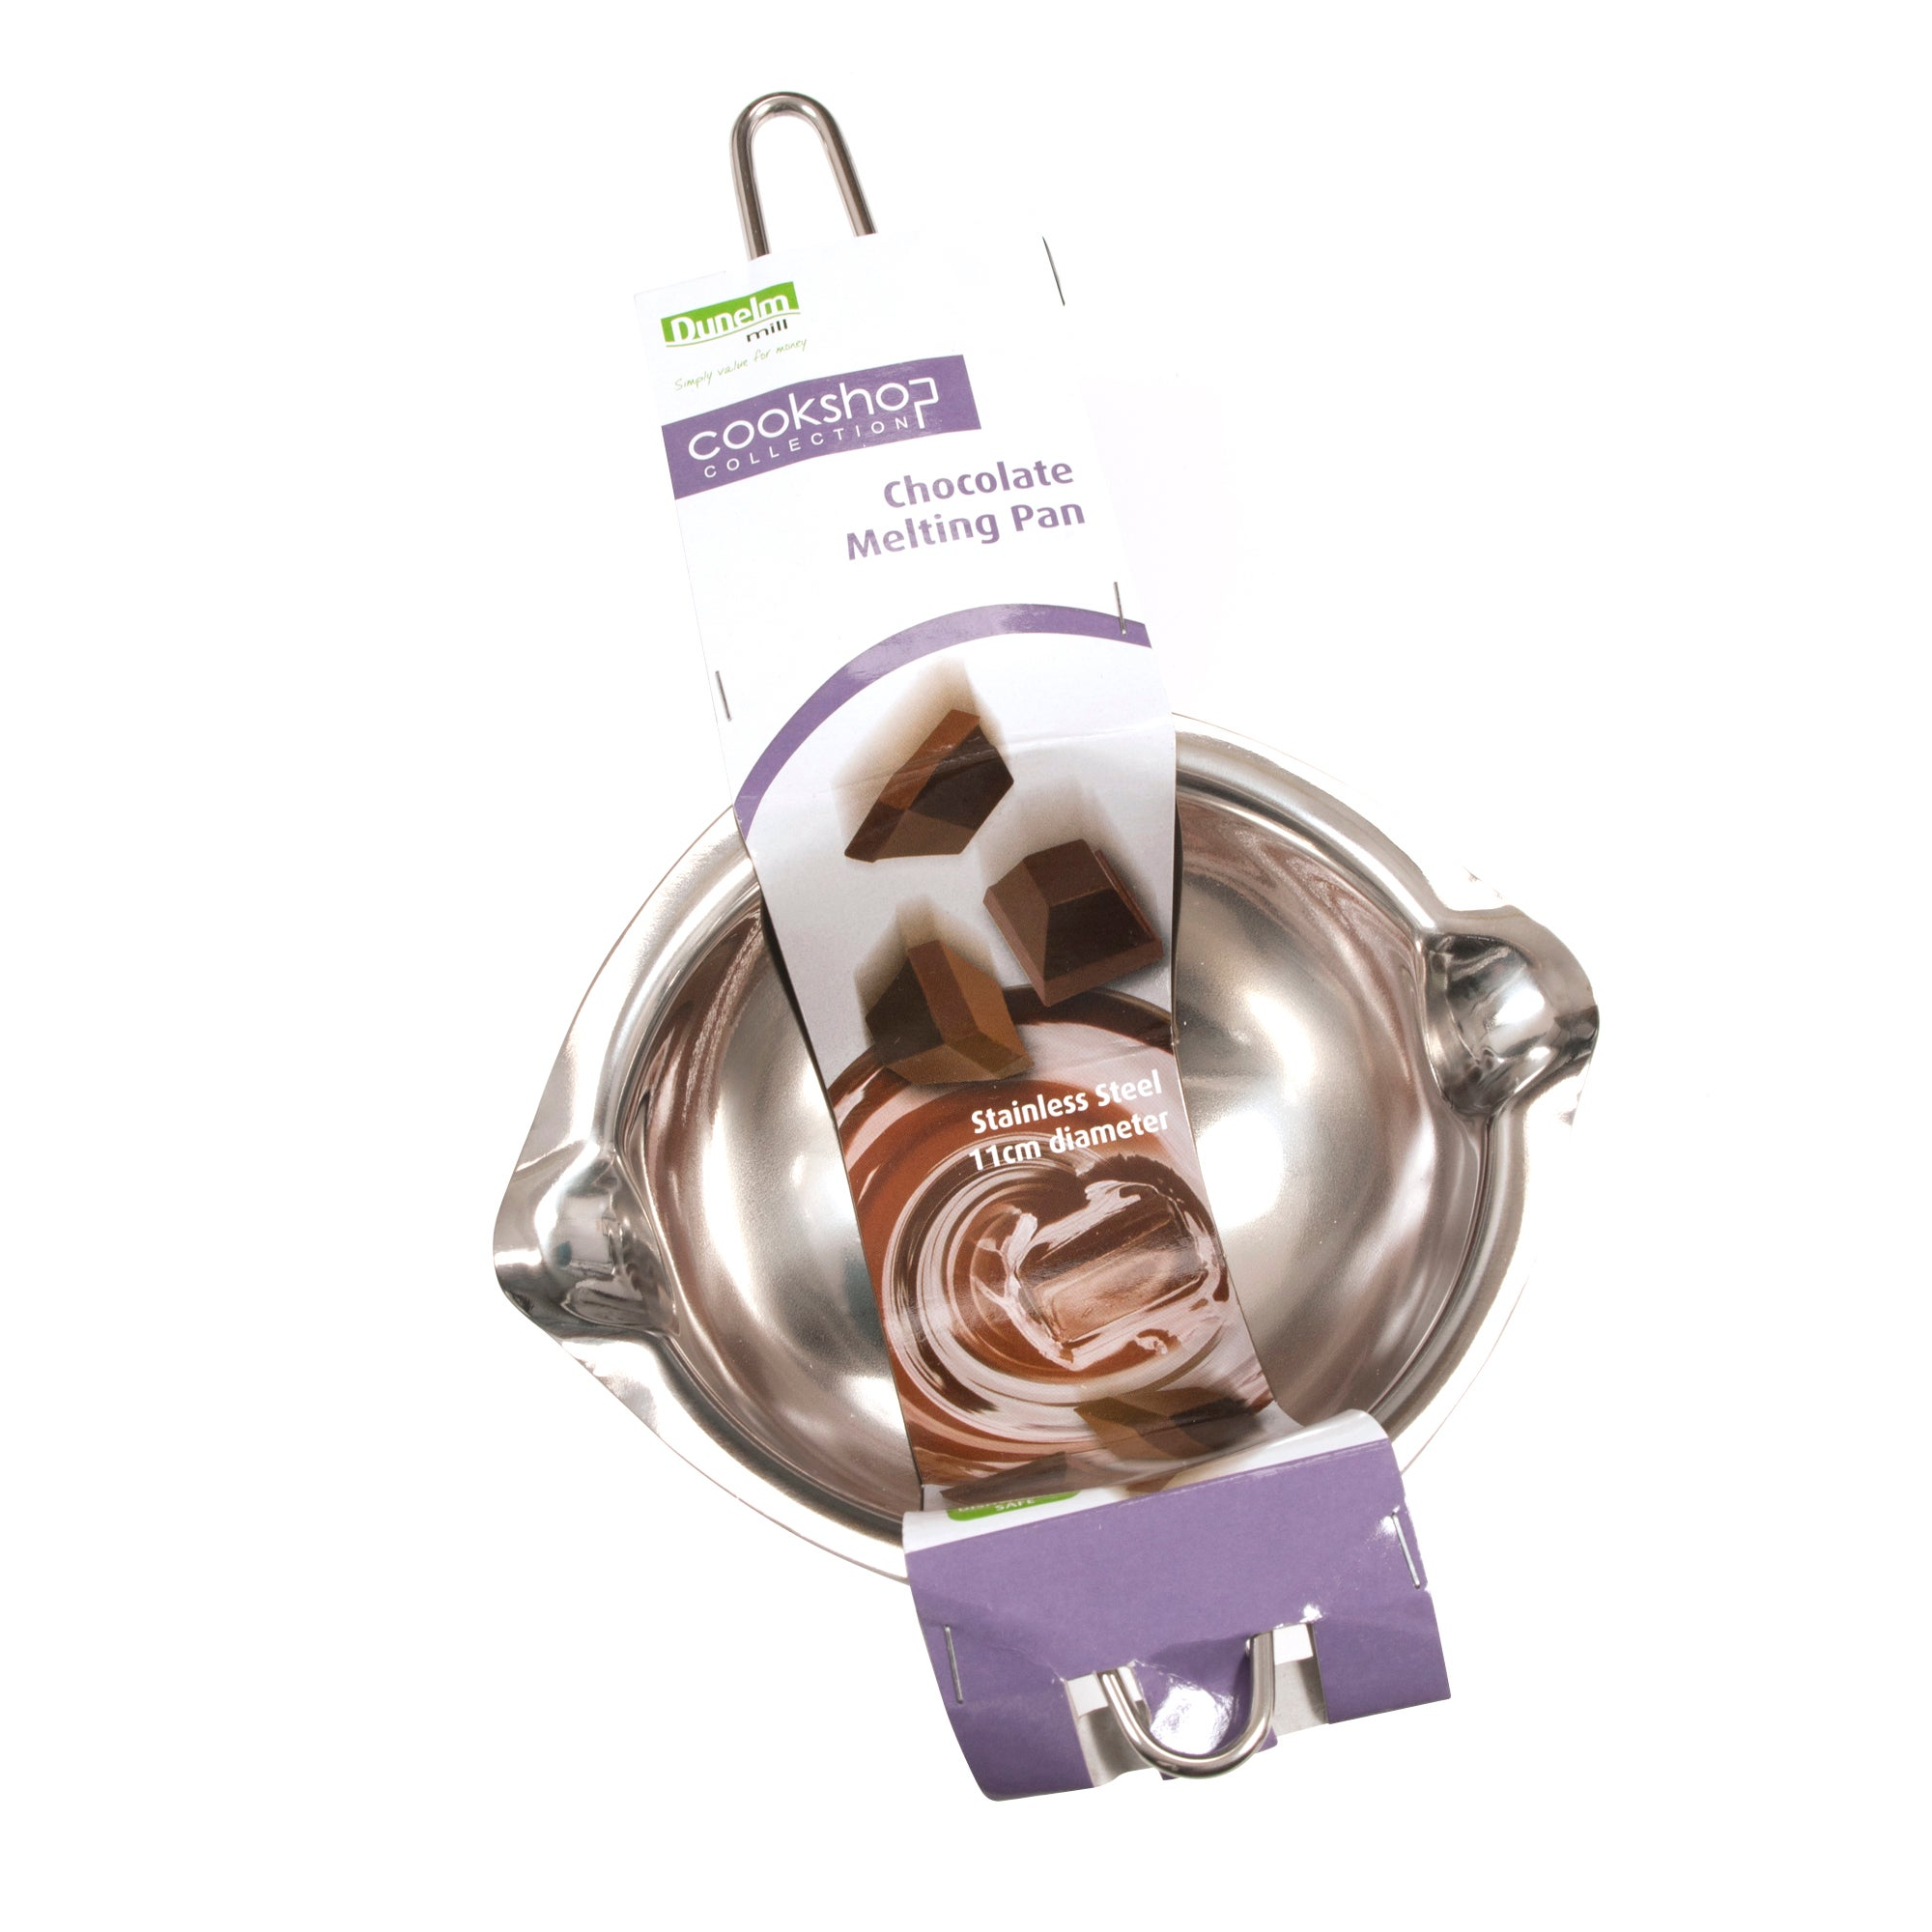 Cookshop Chocolate Melting Pan